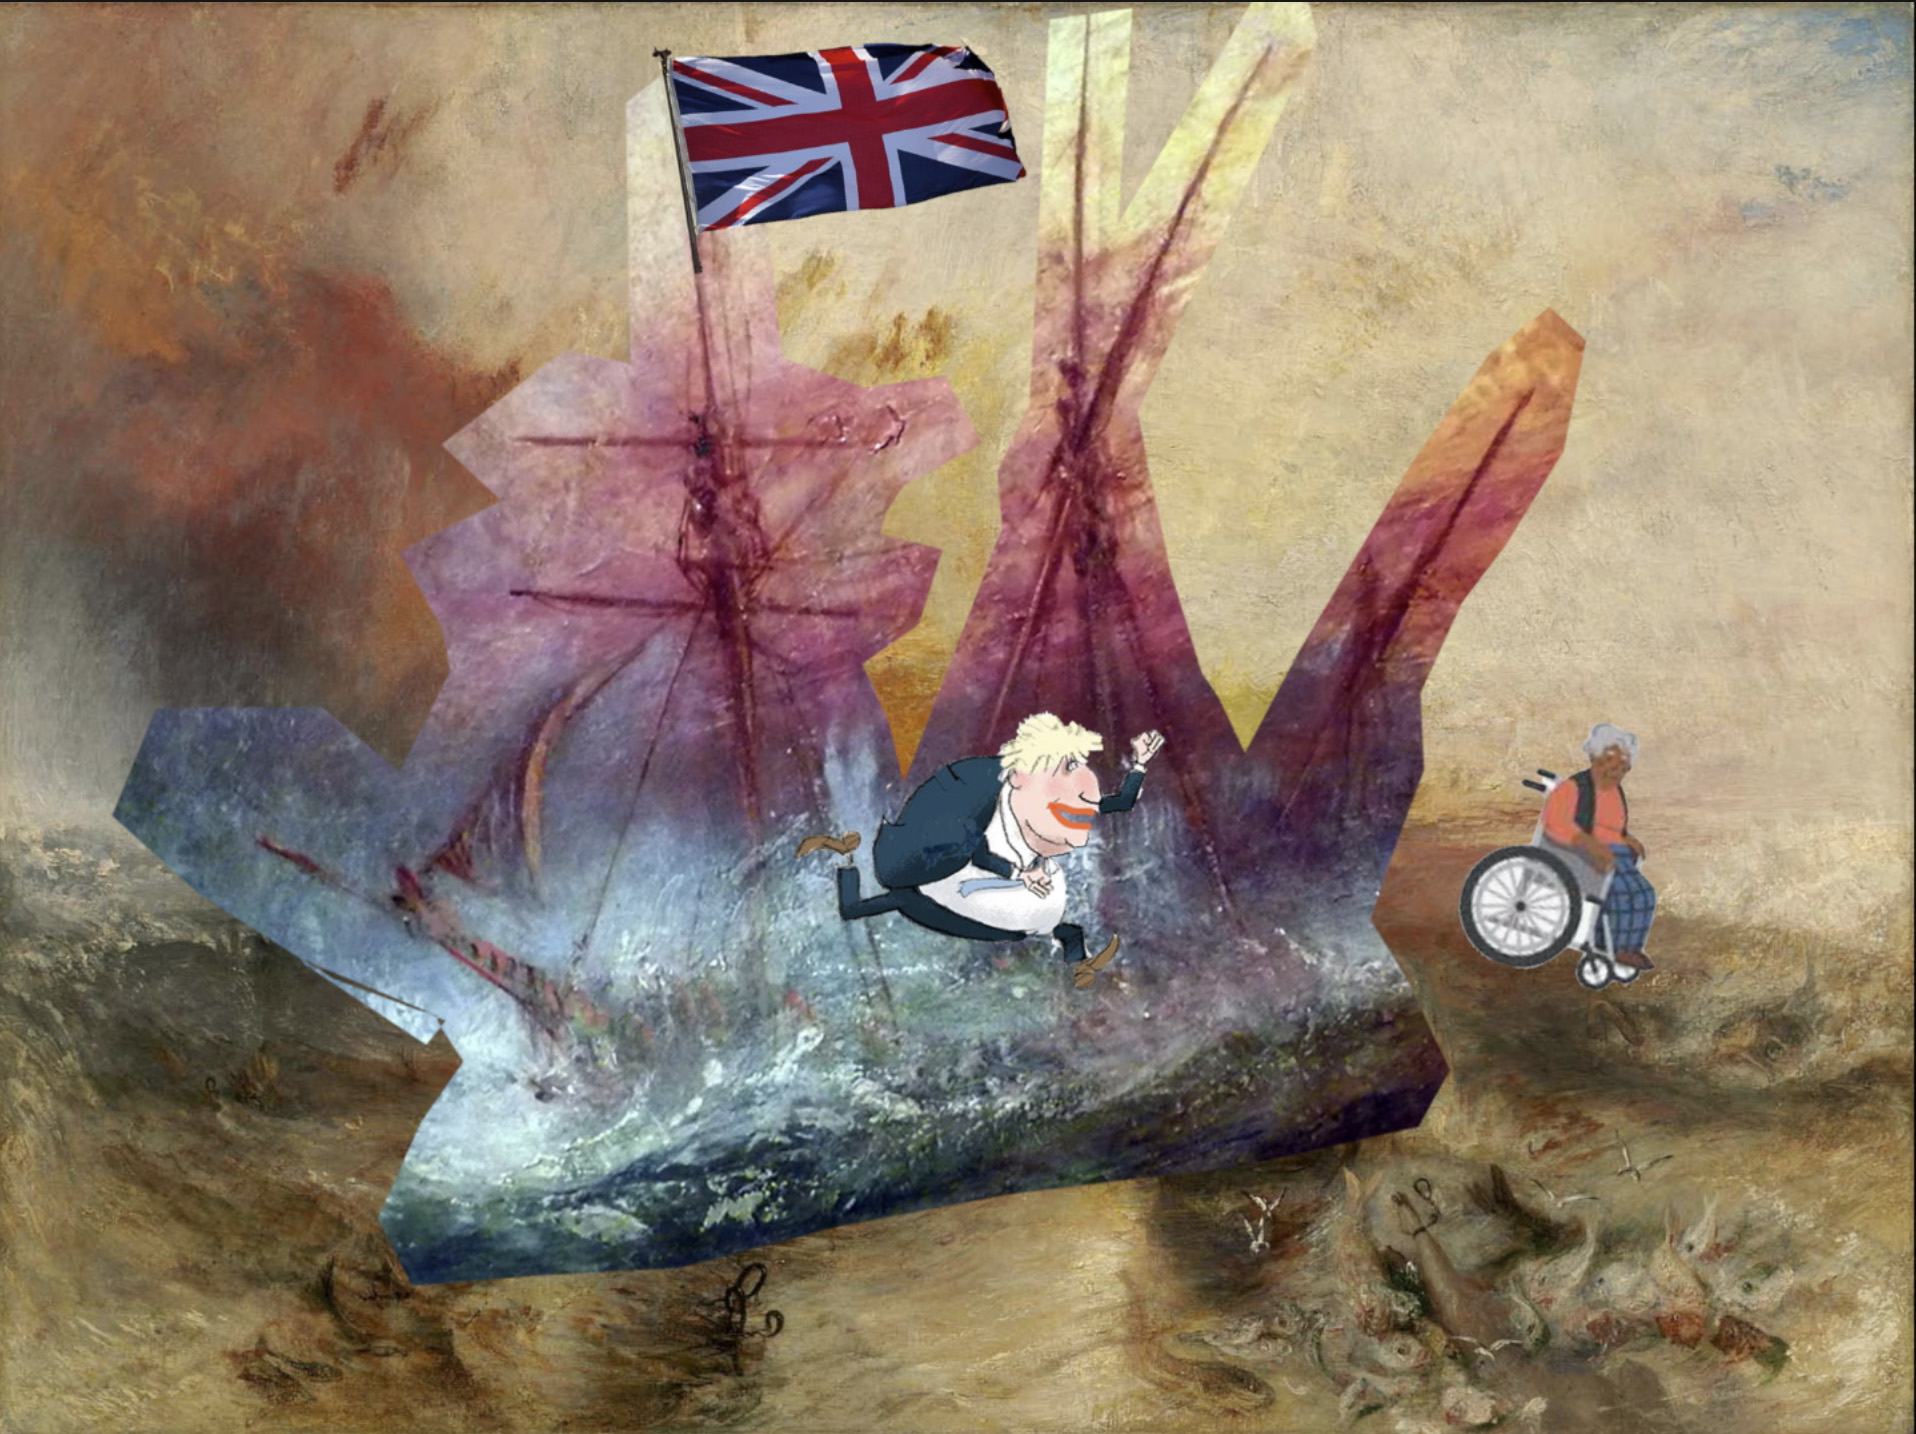 composite modified turners slave ship - with the ship on the painting to show the drowning slaves with added union jack on the maim=n mast plus cartoon of boris pushing a woman in a wheelchair off the back of the ship